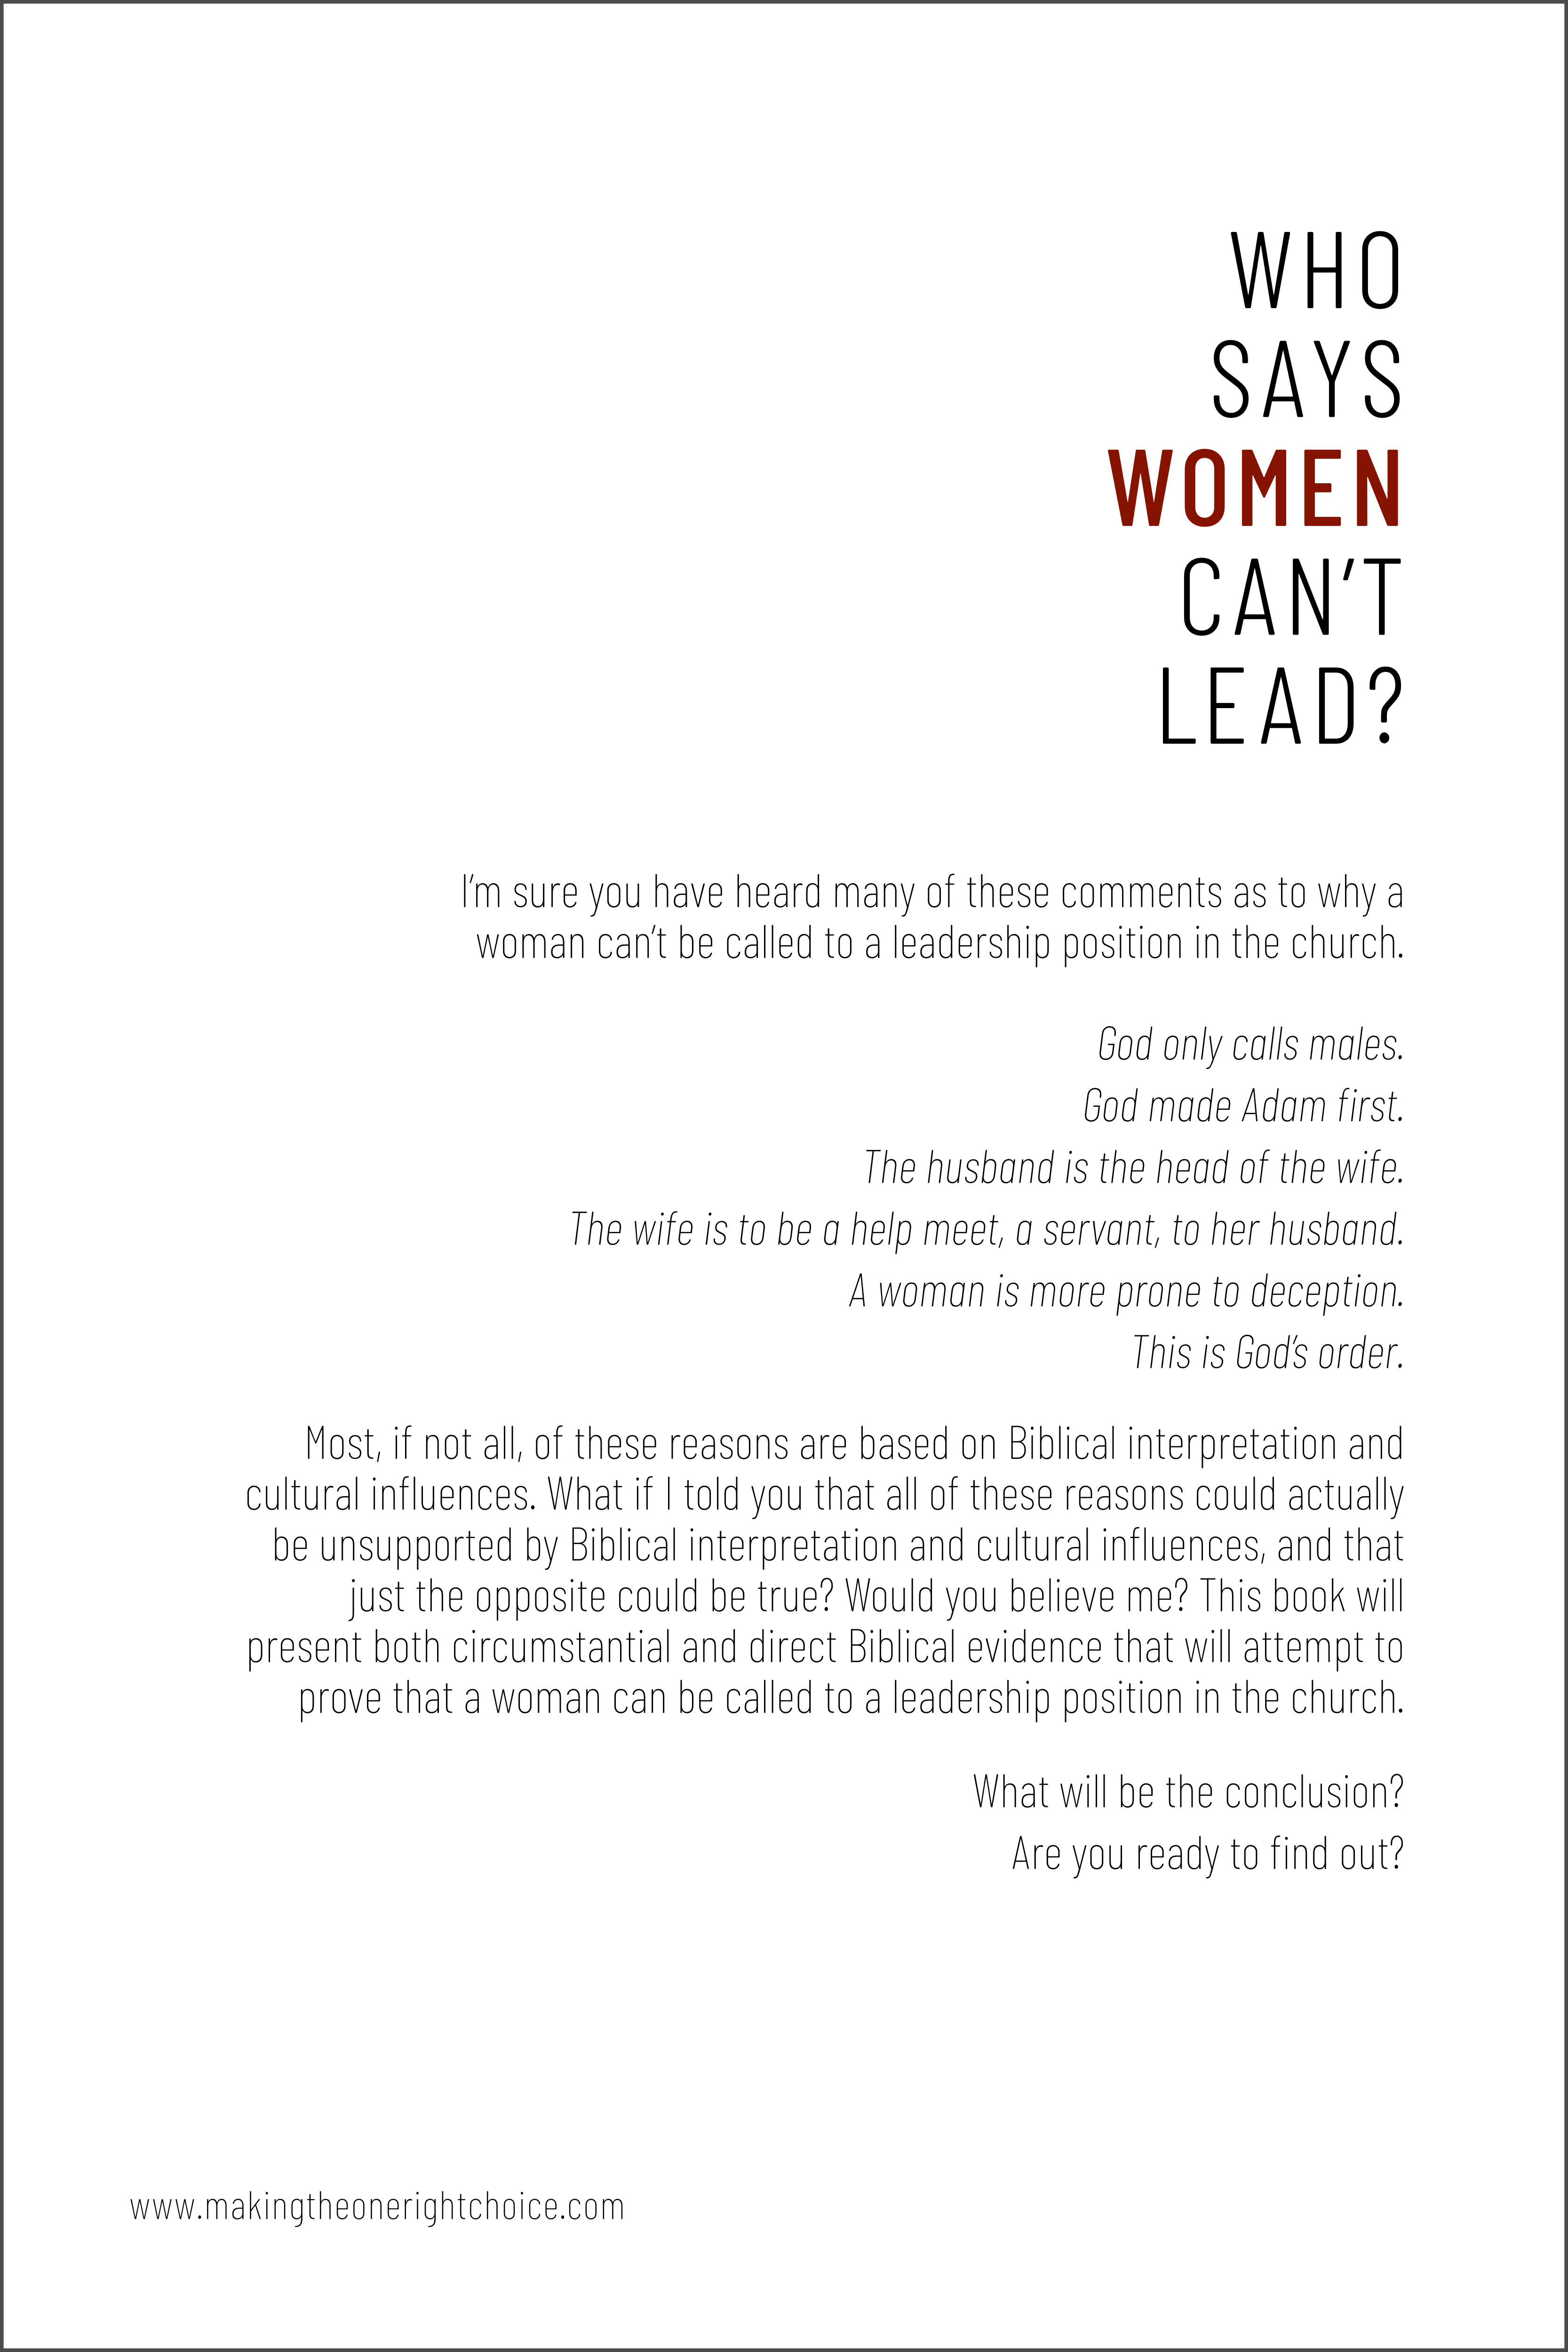 Who Says, Women Can't Lead? BACK COVER